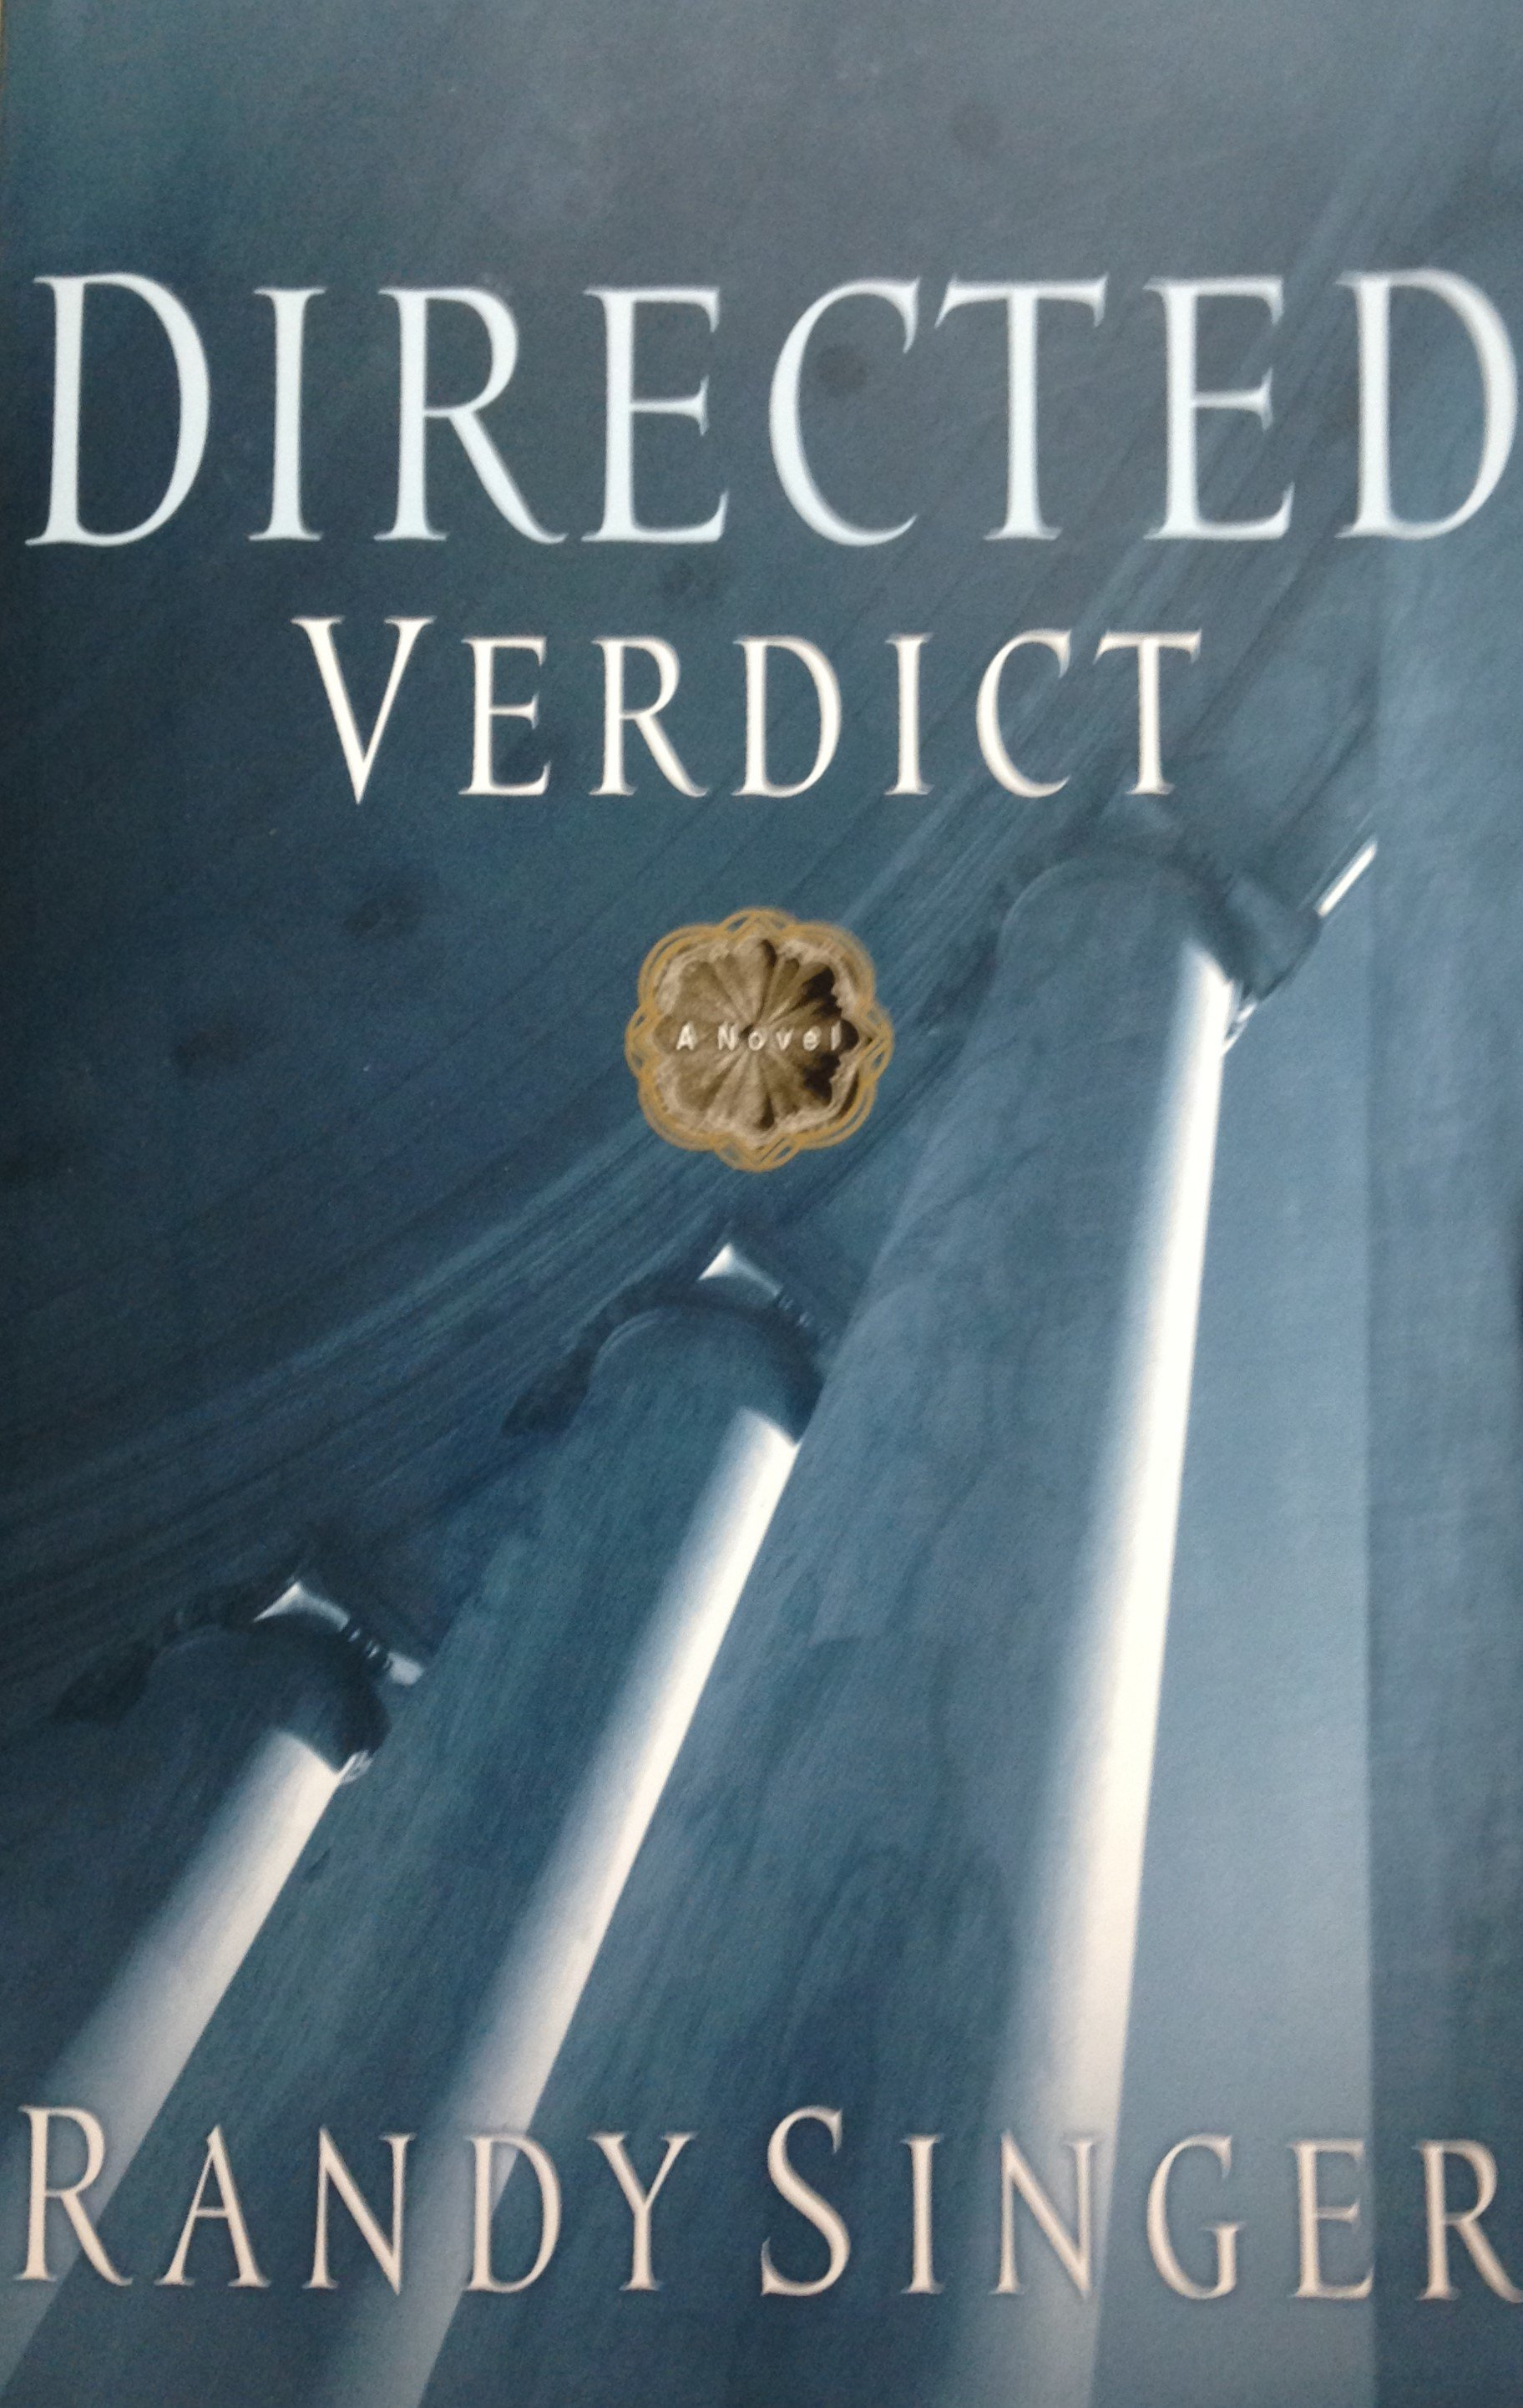 Directed Verdict by Randy Singer (Paperback) 00094